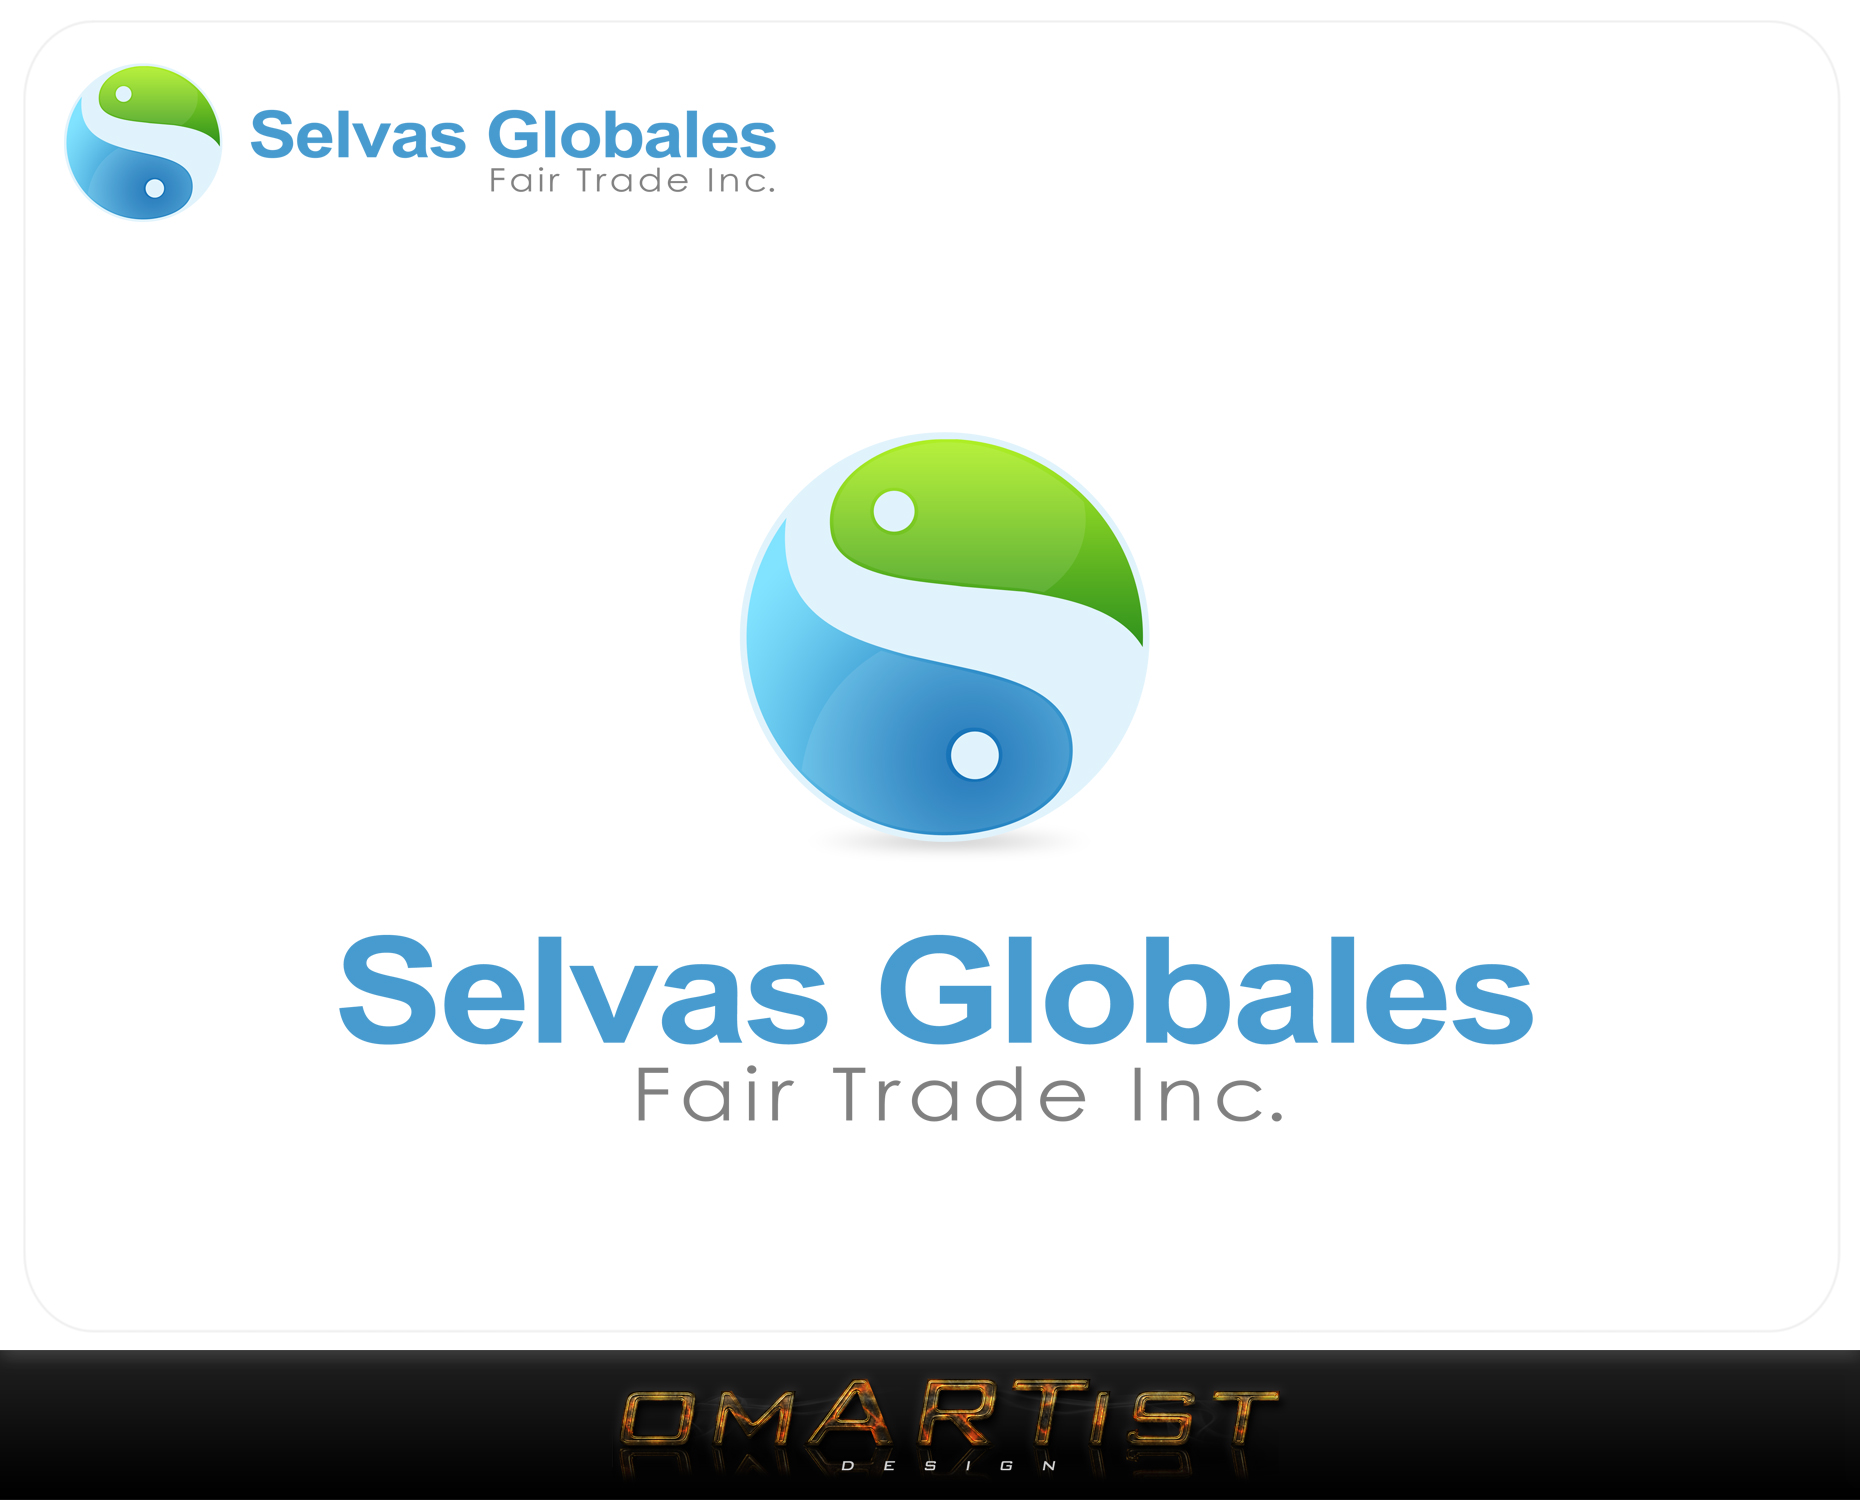 Logo Design by omARTist - Entry No. 37 in the Logo Design Contest Captivating Logo Design for Selvas Globales Fair Trade Inc..